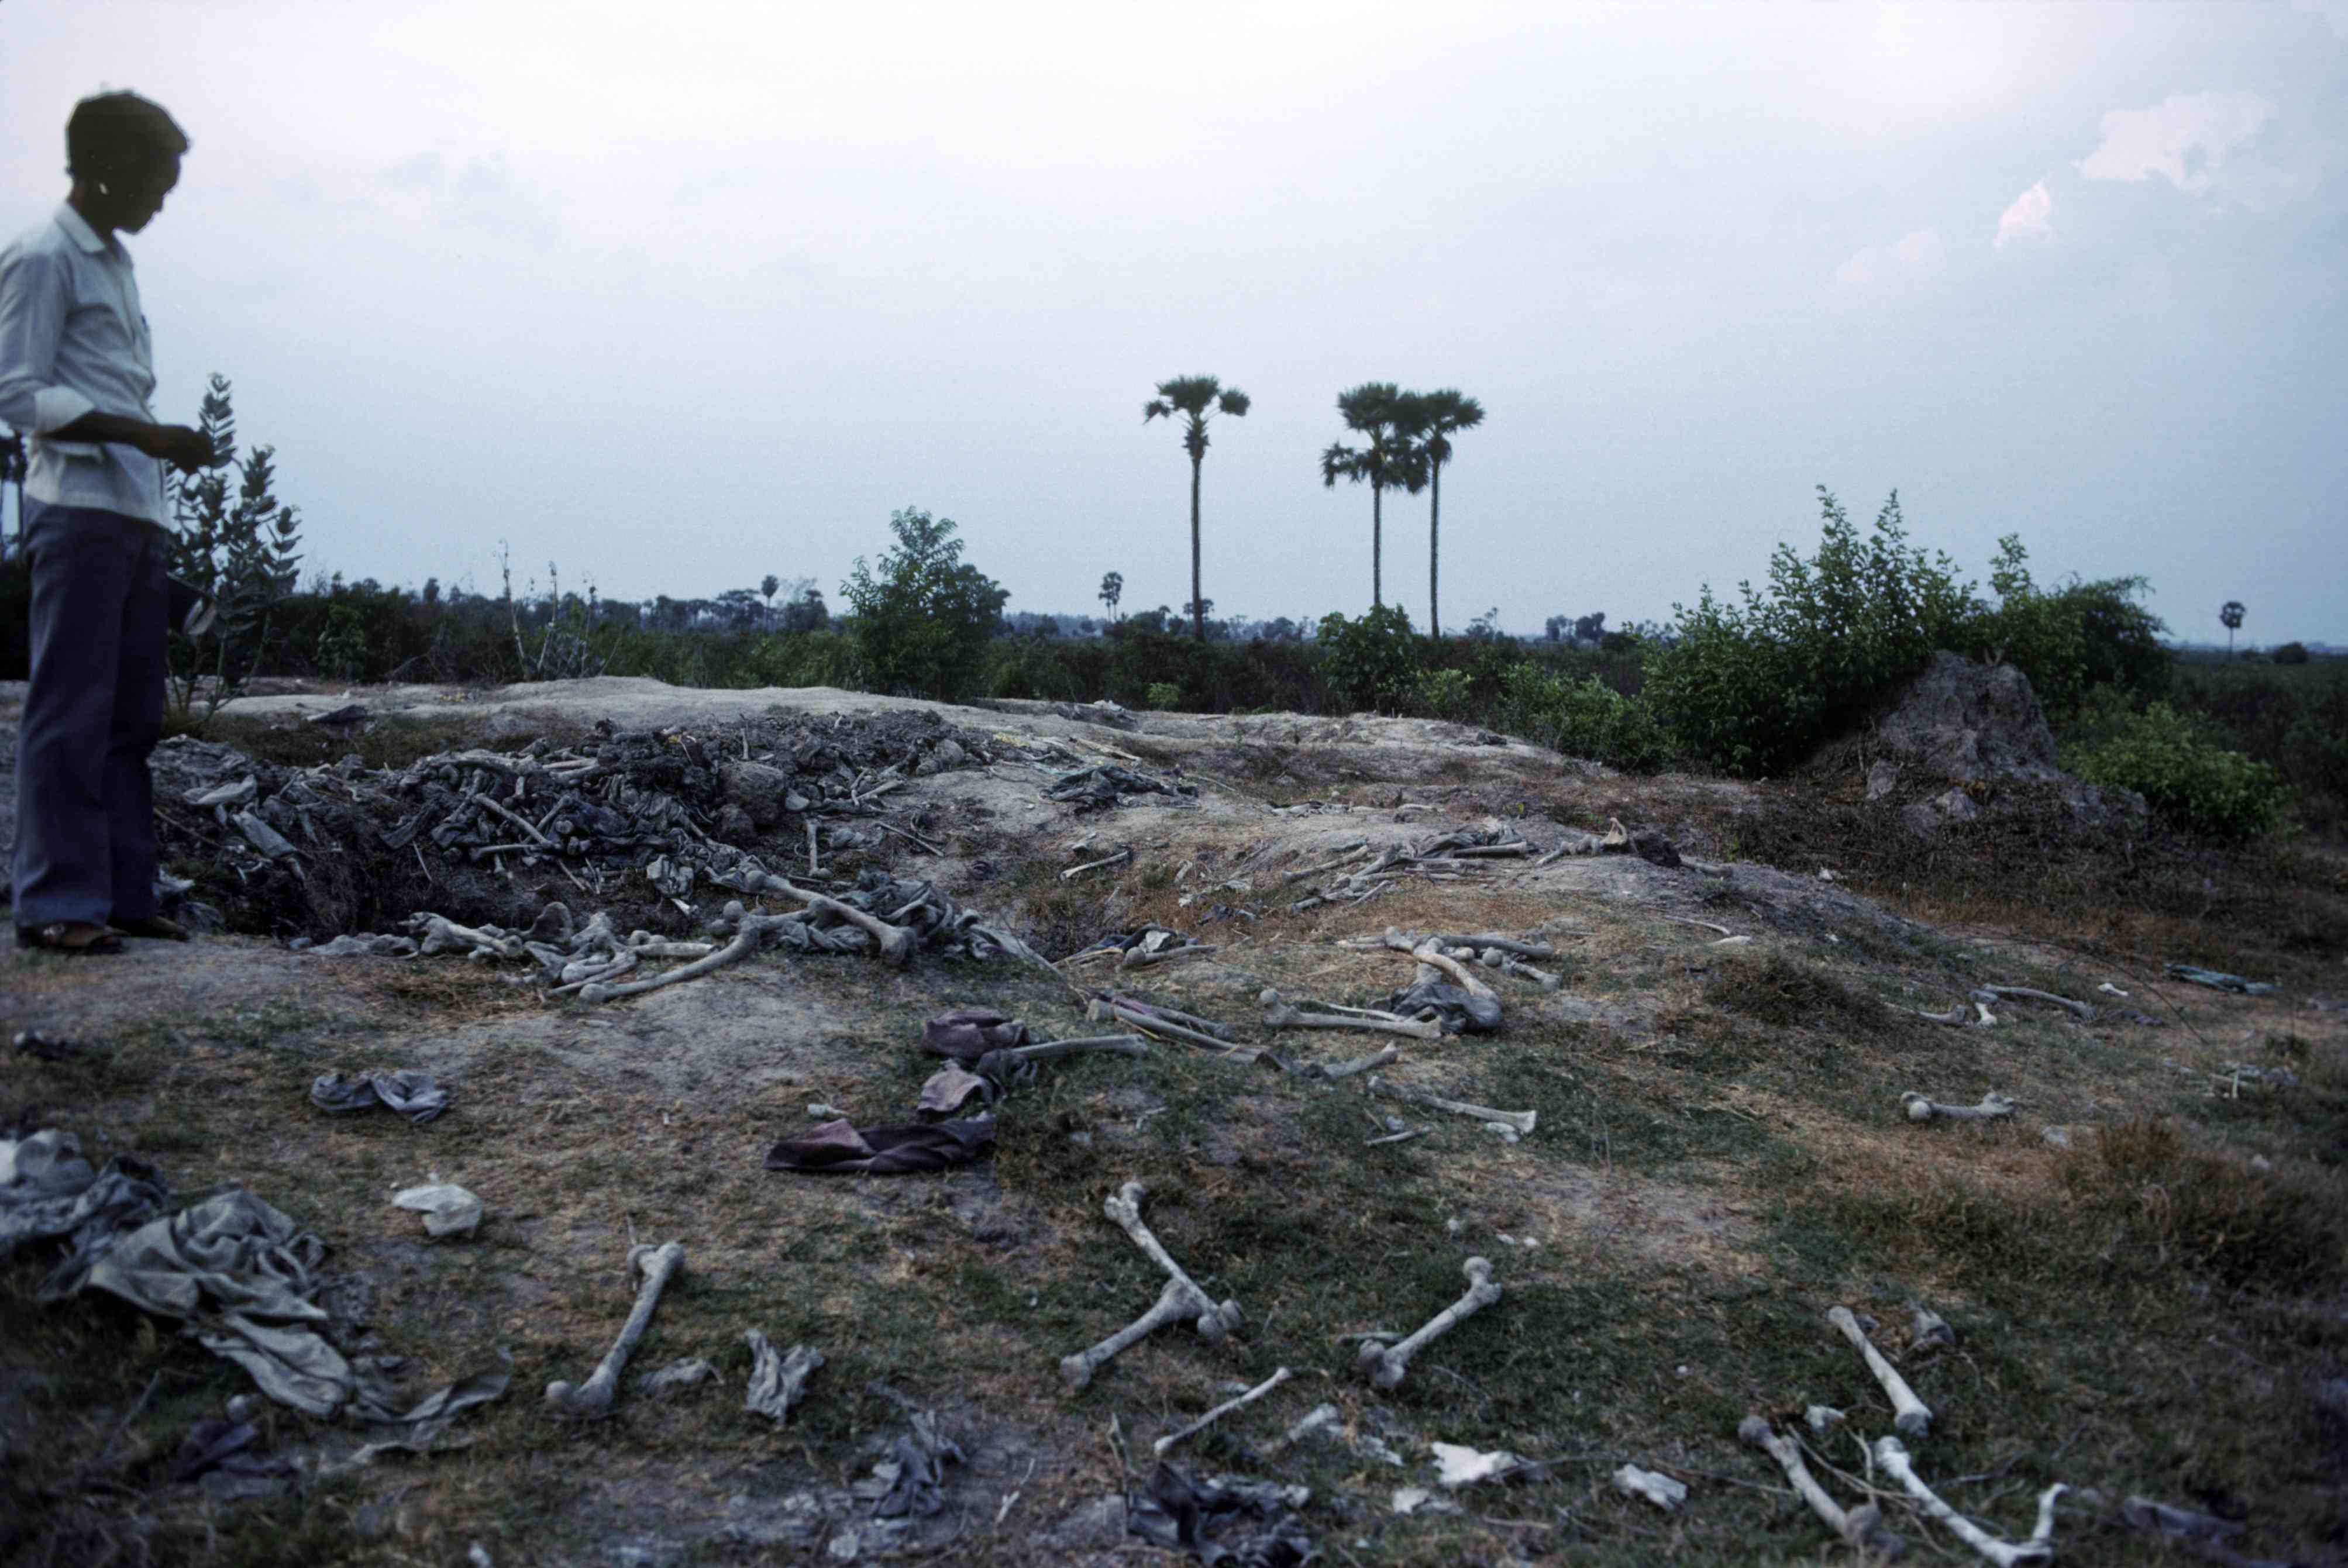 Human remains excavated from the Killing Fields at Choeung Ek outside Phnom Penh, Cambodia, 1983